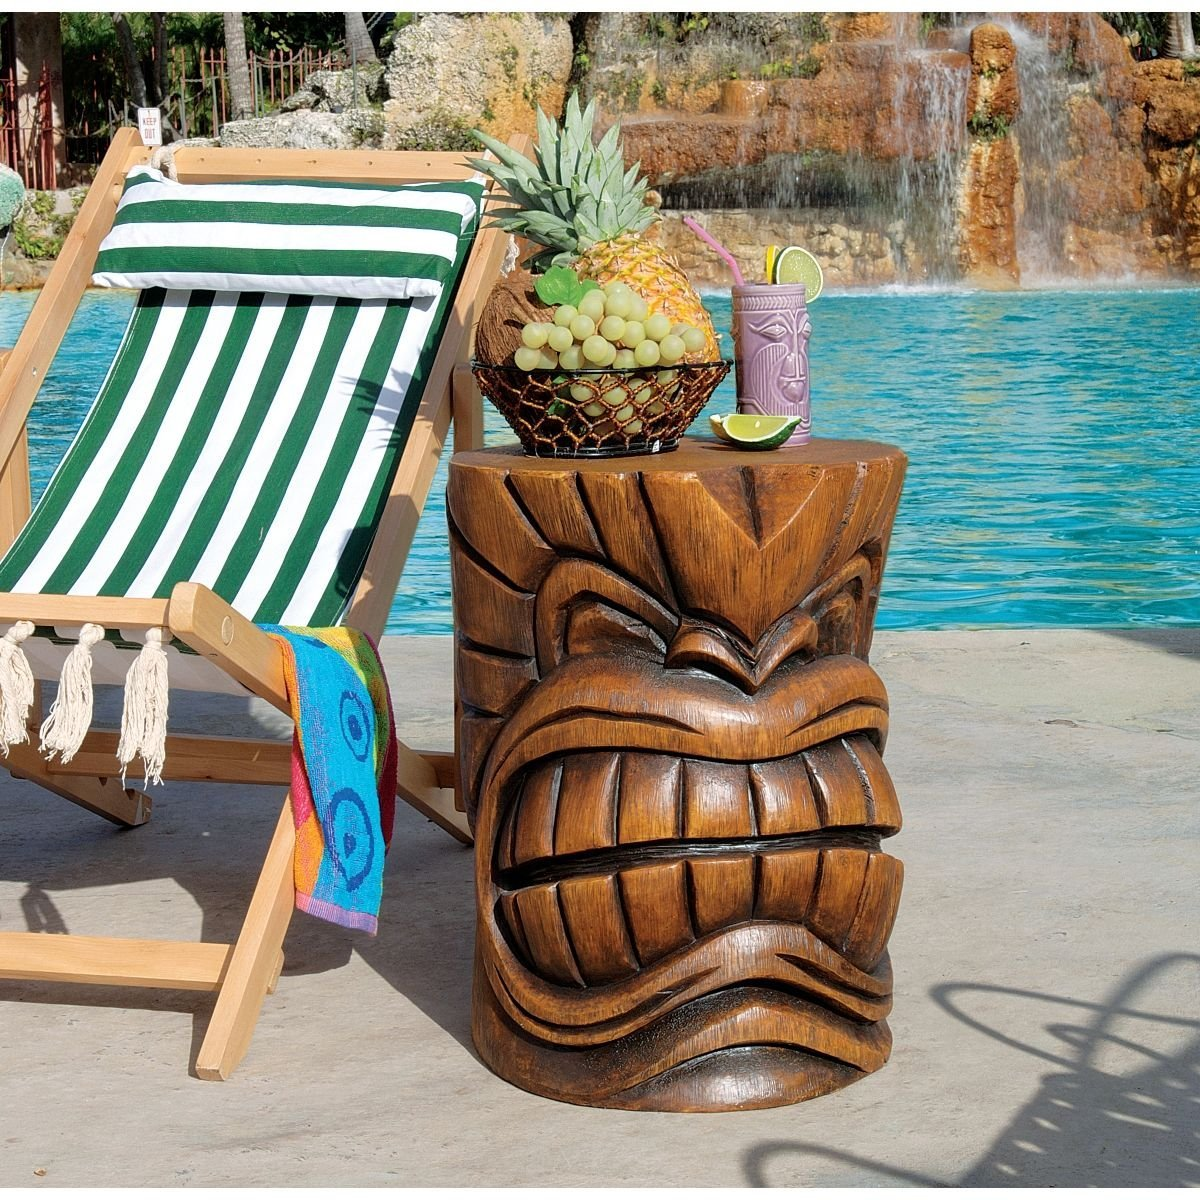 Tiki Statues For Sale 11 Fun Tiki Statues To Add To Your